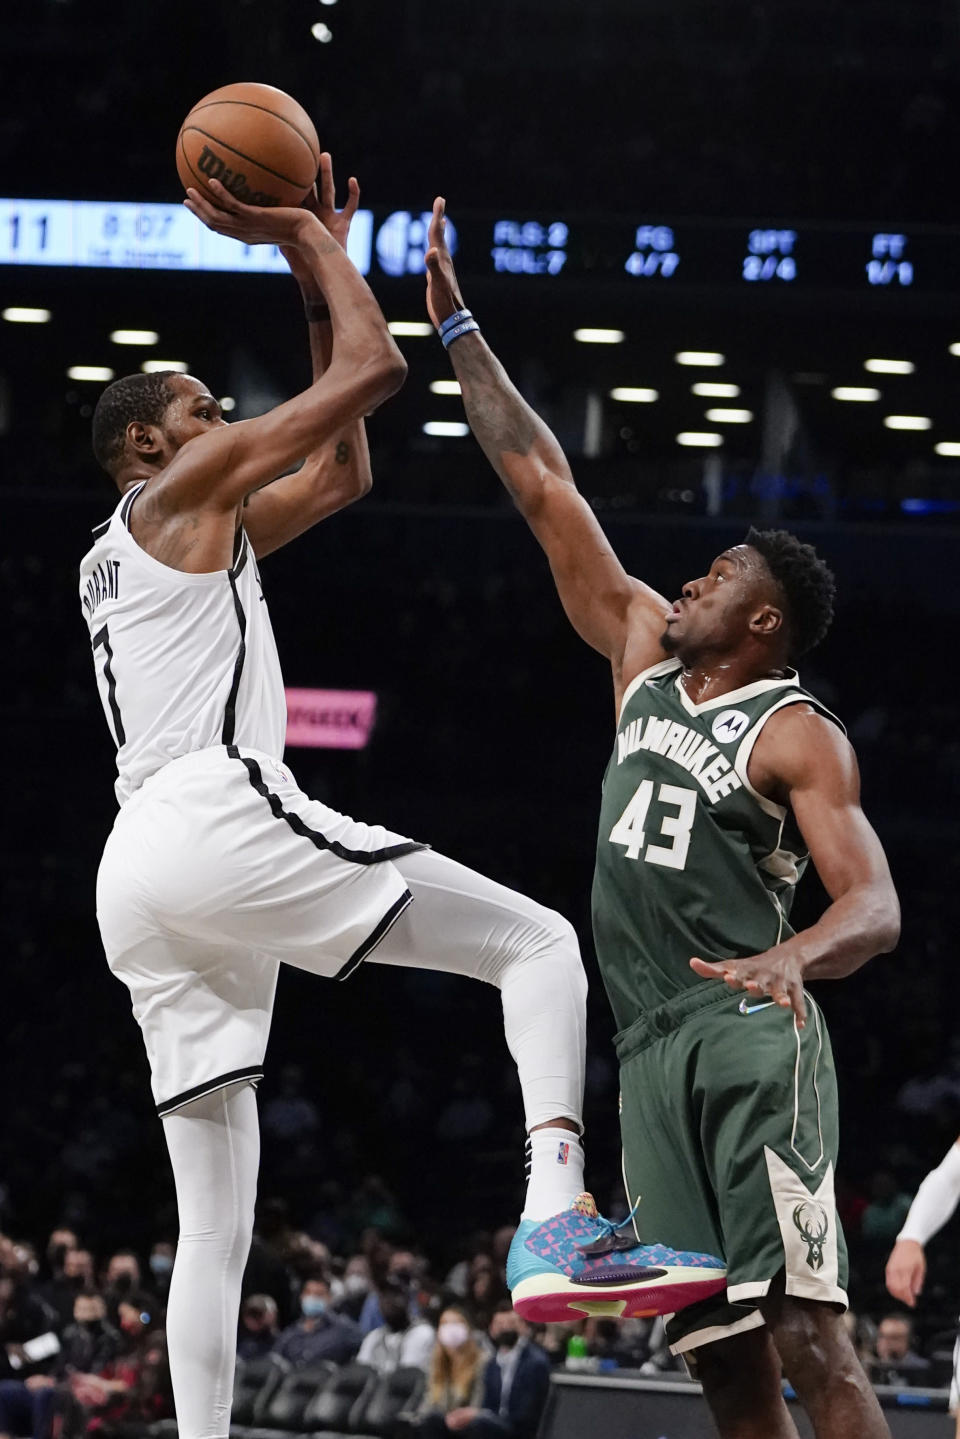 Brooklyn Nets' Kevin Durant (7) shoots over Milwaukee Bucks' Thanasis Antetokounmpo (43) during the first half of a preseason NBA basketball game Friday, Oct. 8, 2021, in New York. (AP Photo/Frank Franklin II)